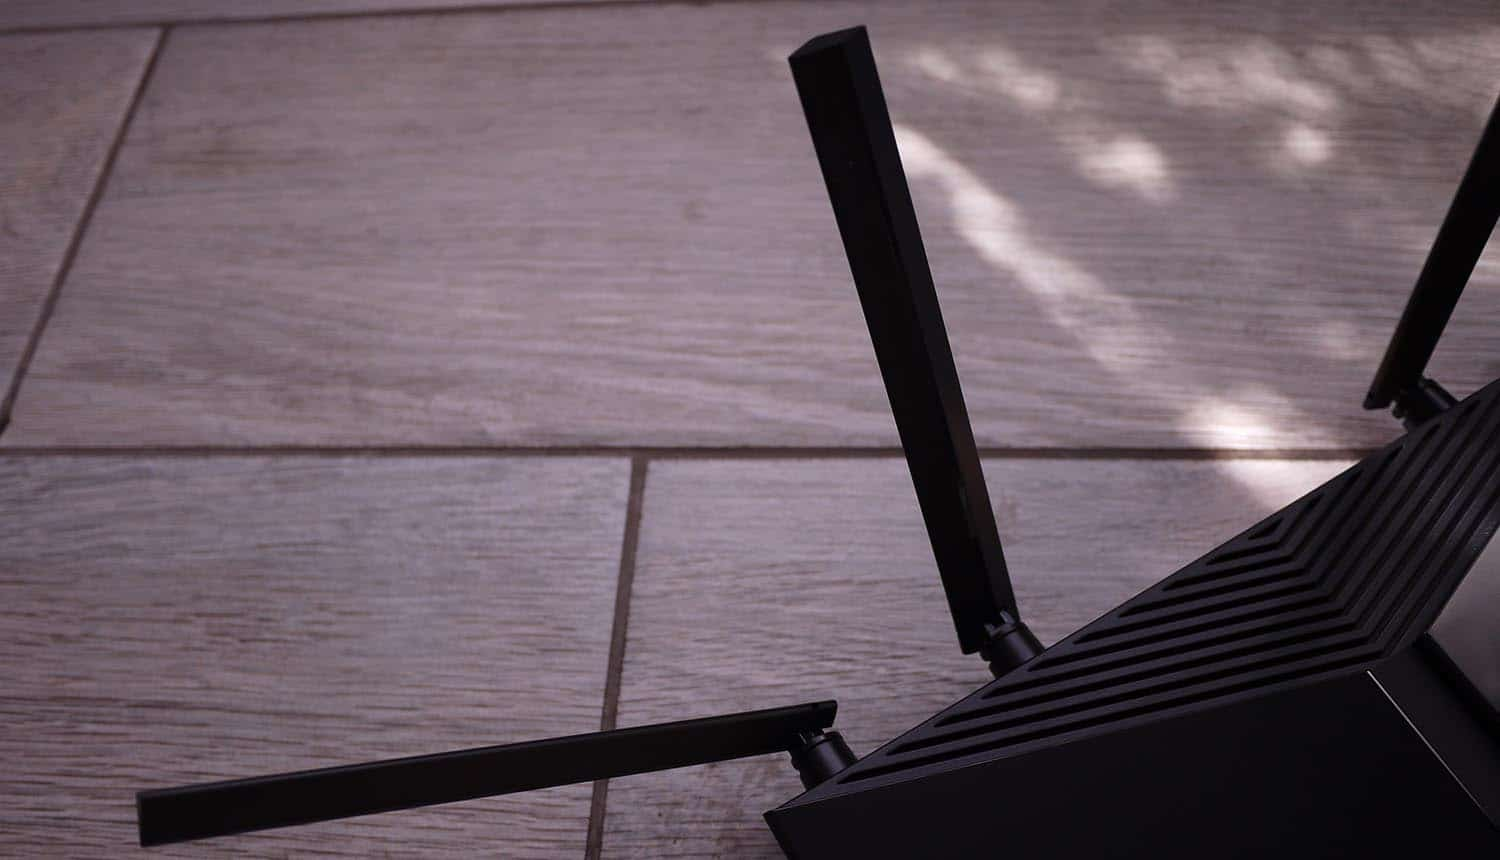 Wi-Fi router device at home showing Wi-Fi security vulnerabilities